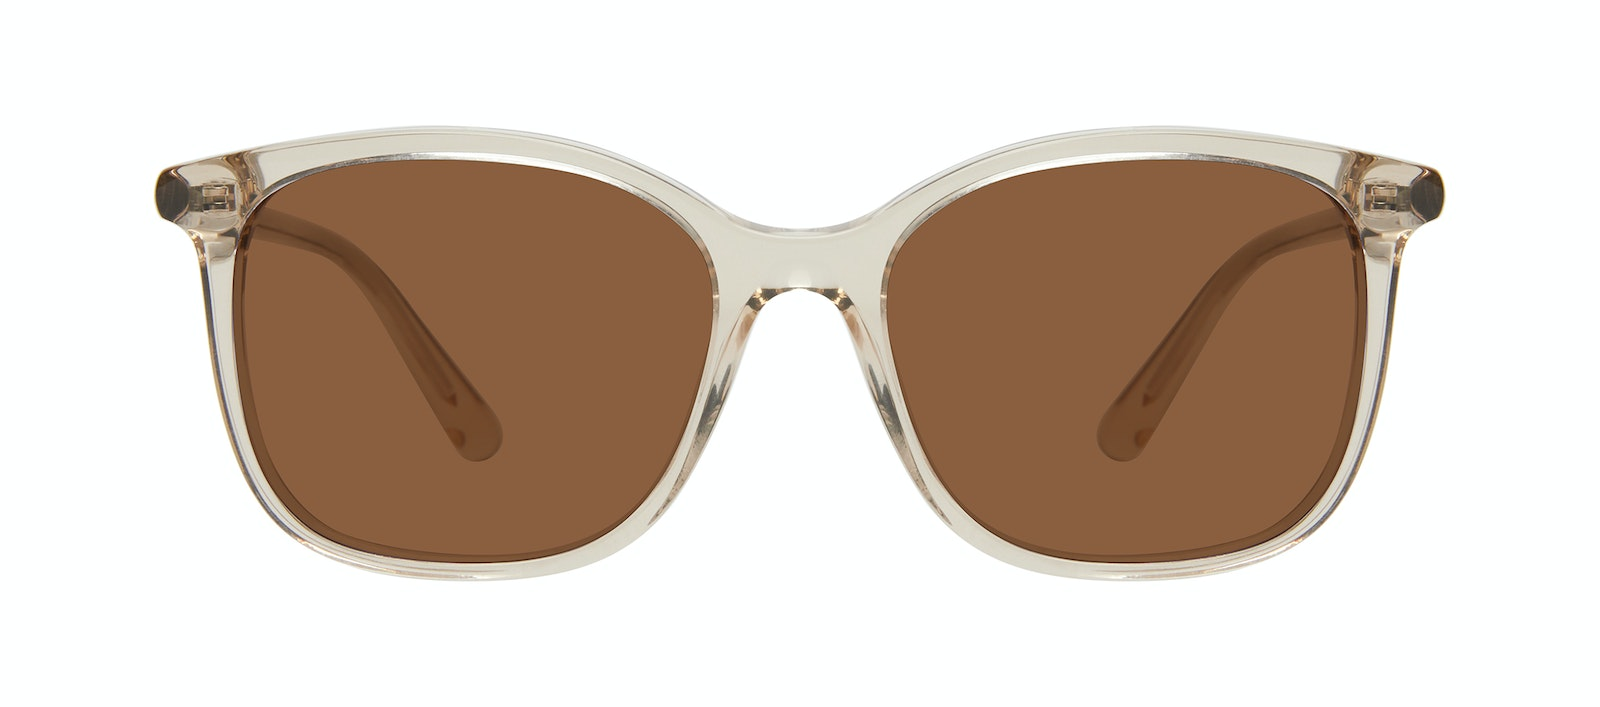 Affordable Fashion Glasses Square Sunglasses Women Luna Olive Front